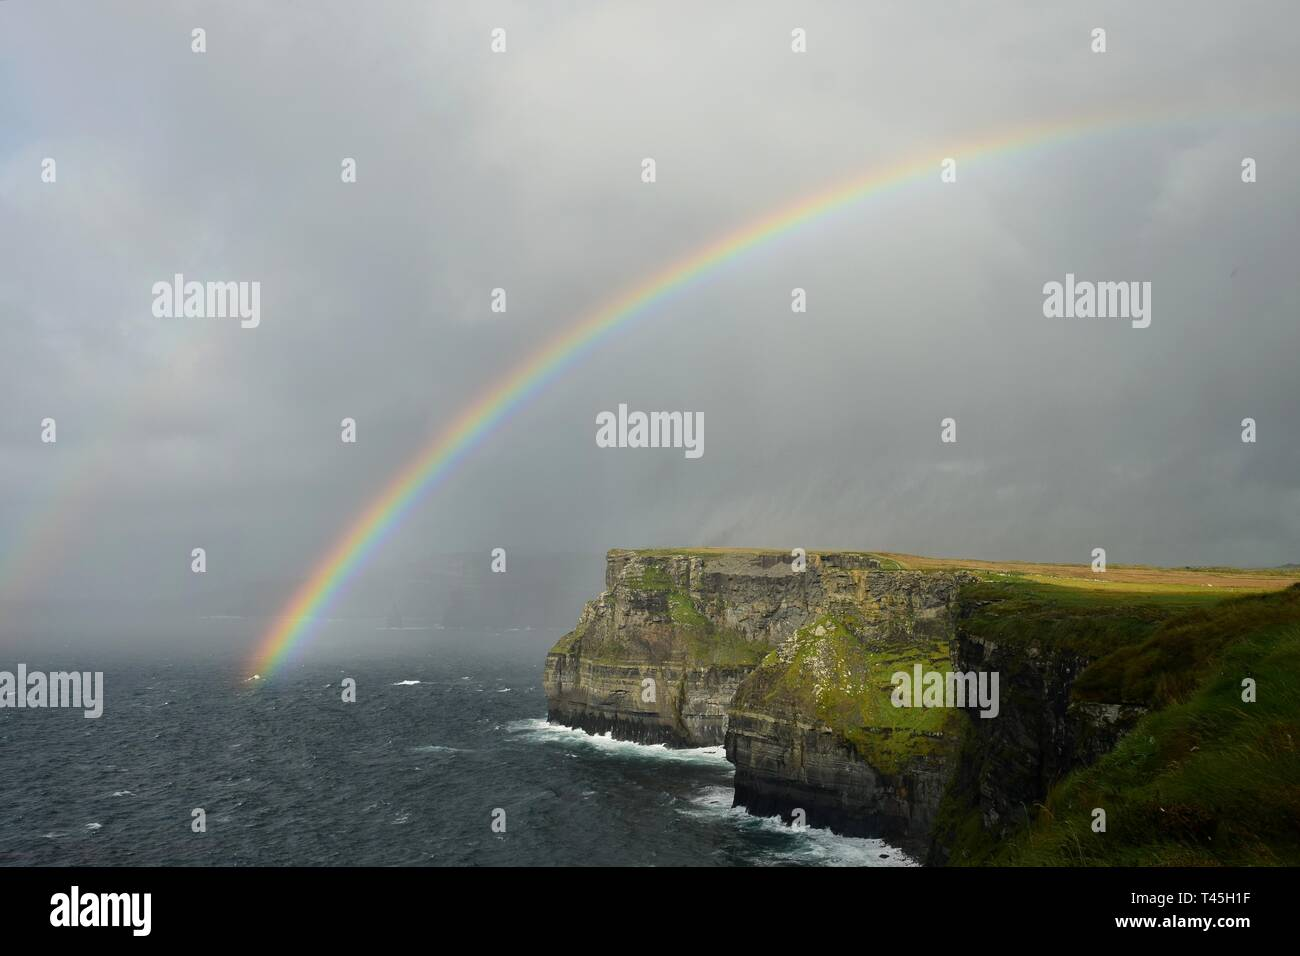 A rainbow over the Cliffs of Moher on the west coast of Ireland in County Clare. - Stock Image